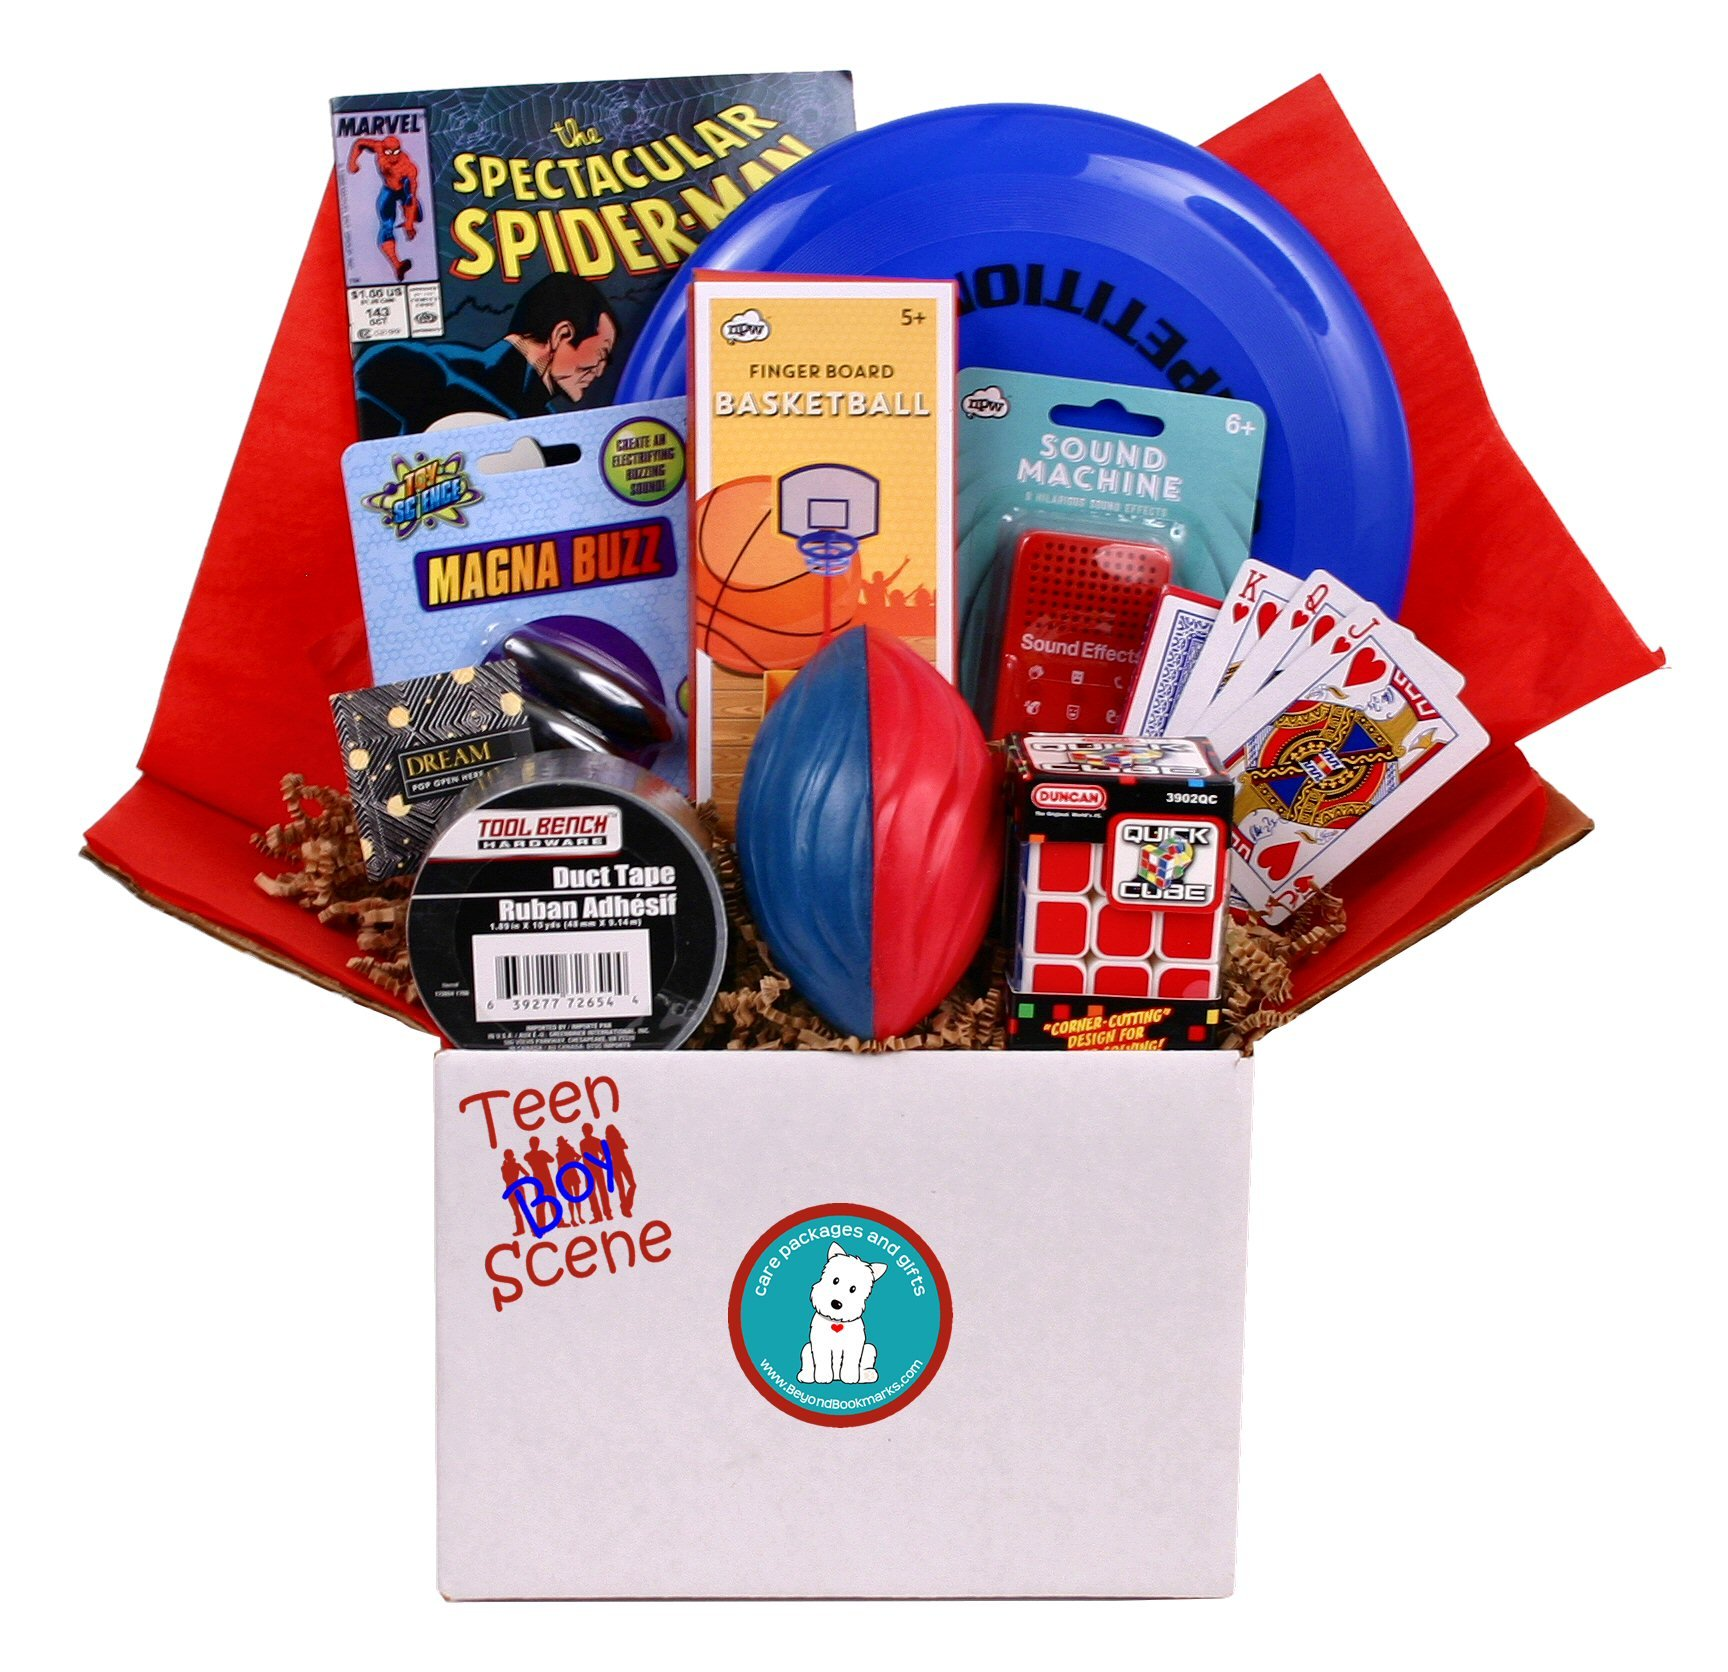 Beyond Bookmarks Teen Scene - Boy's Summer Camp Care Package or Birthday Gift Includes Marvel Comic Book, Mini Sound Effects Machine and More